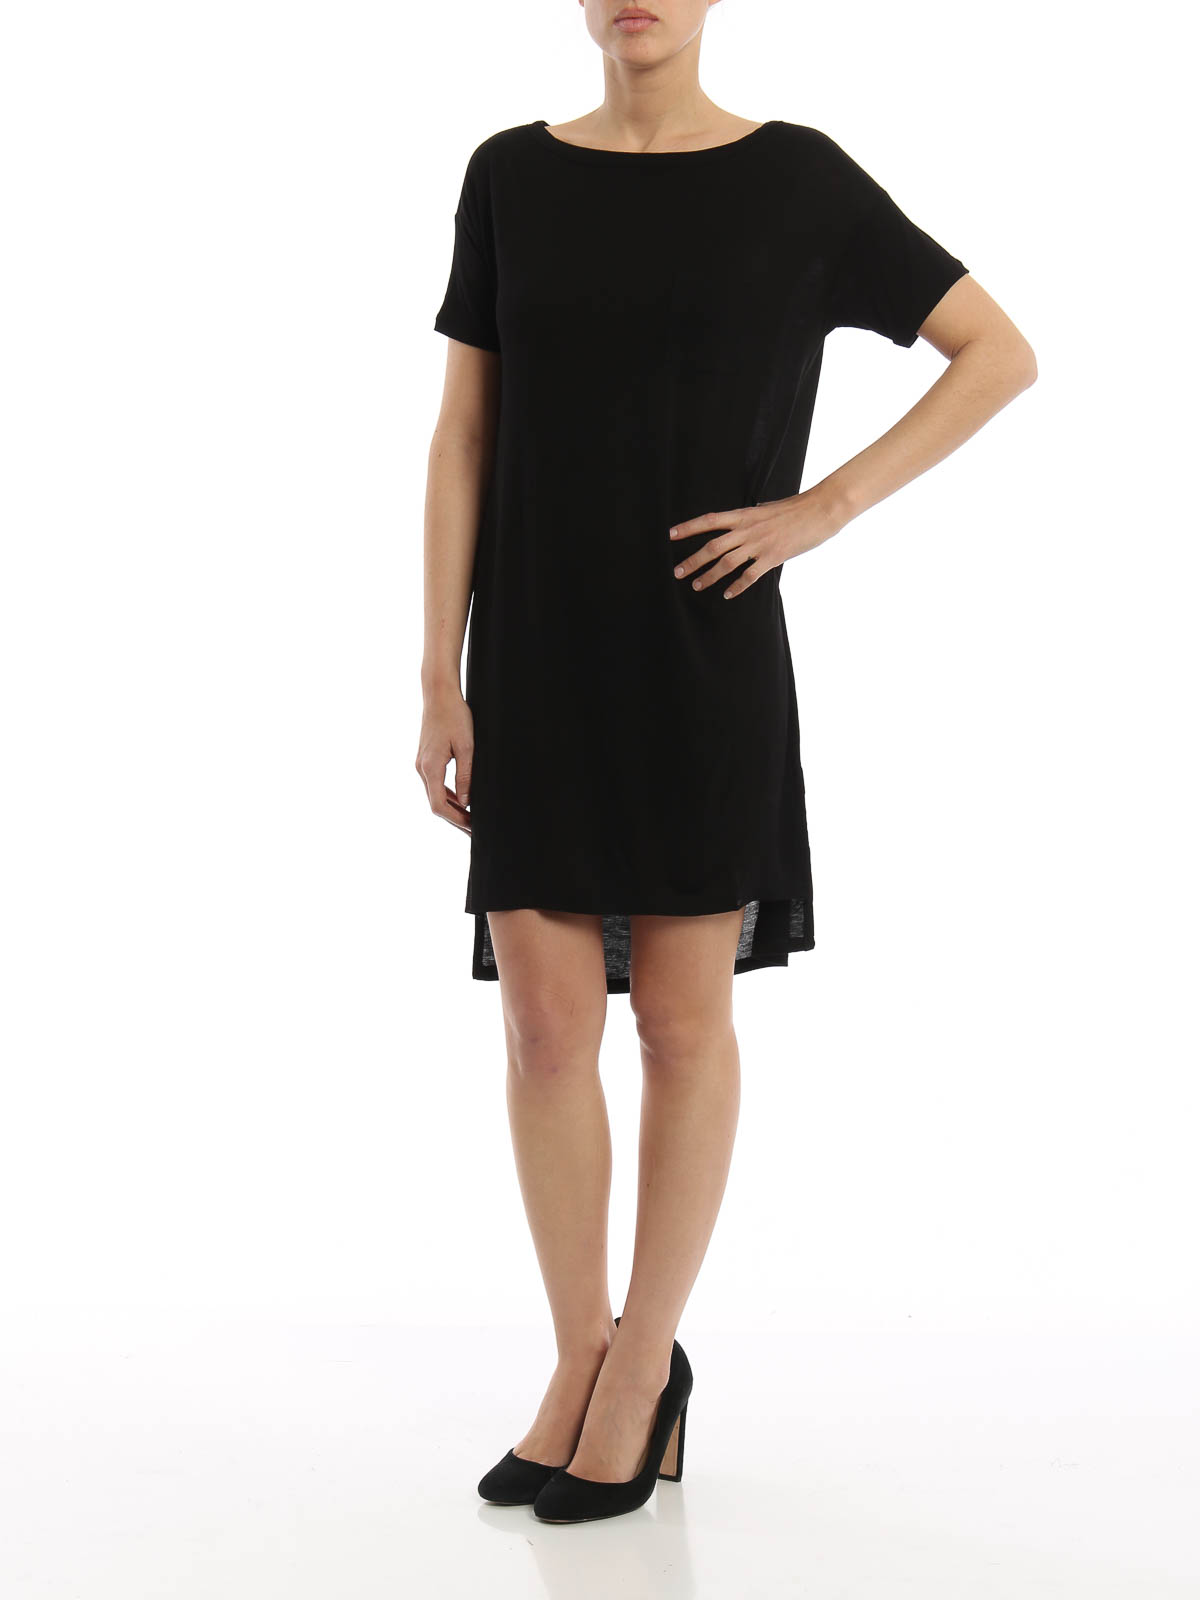 Shop Top Deals from our Sister Site! Sign In / Register. Skip to search results Skip to filters Skip to sort Skip to pagination Skip to selected filters. tshirt dress and Clothing items found. Sort By items. View. Sort By. Filter. Your Selections Cotton Modal Spandex Jersey Easy T-Shirt Dress with Tie Hem. $ MSRP: $ Like.